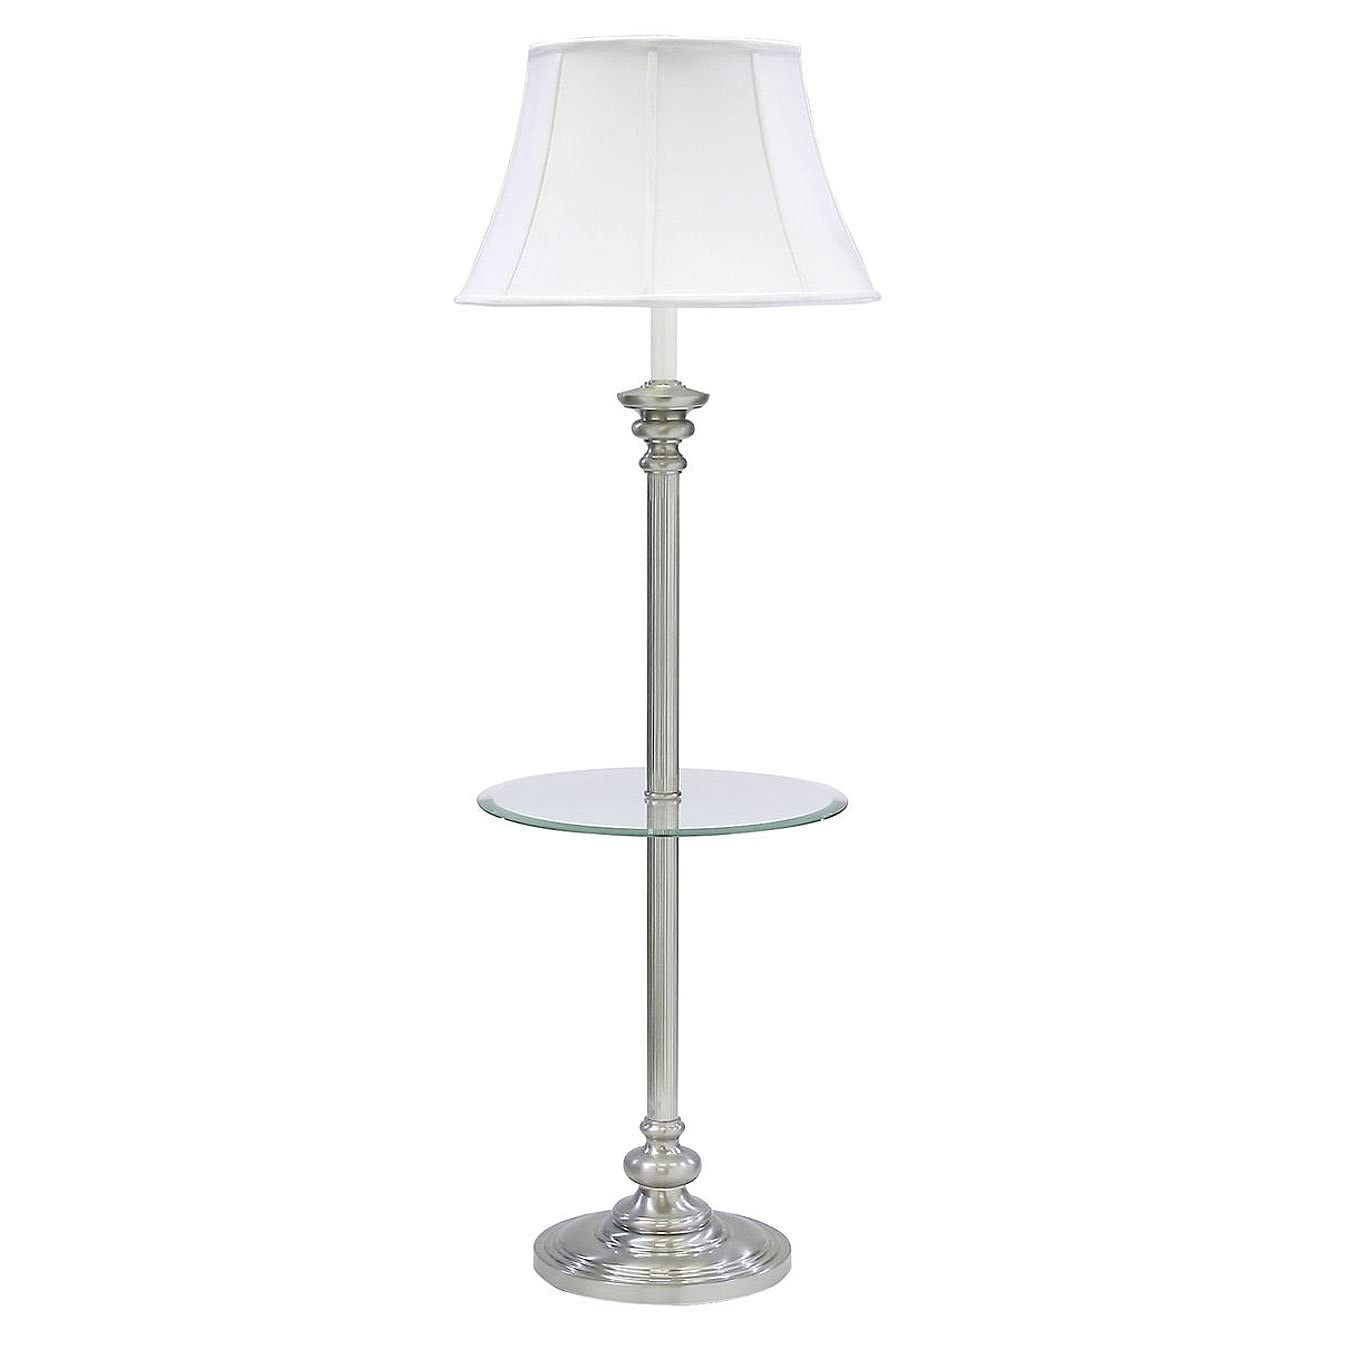 floor lamp with table antique brass with off white softback shade. Black Bedroom Furniture Sets. Home Design Ideas